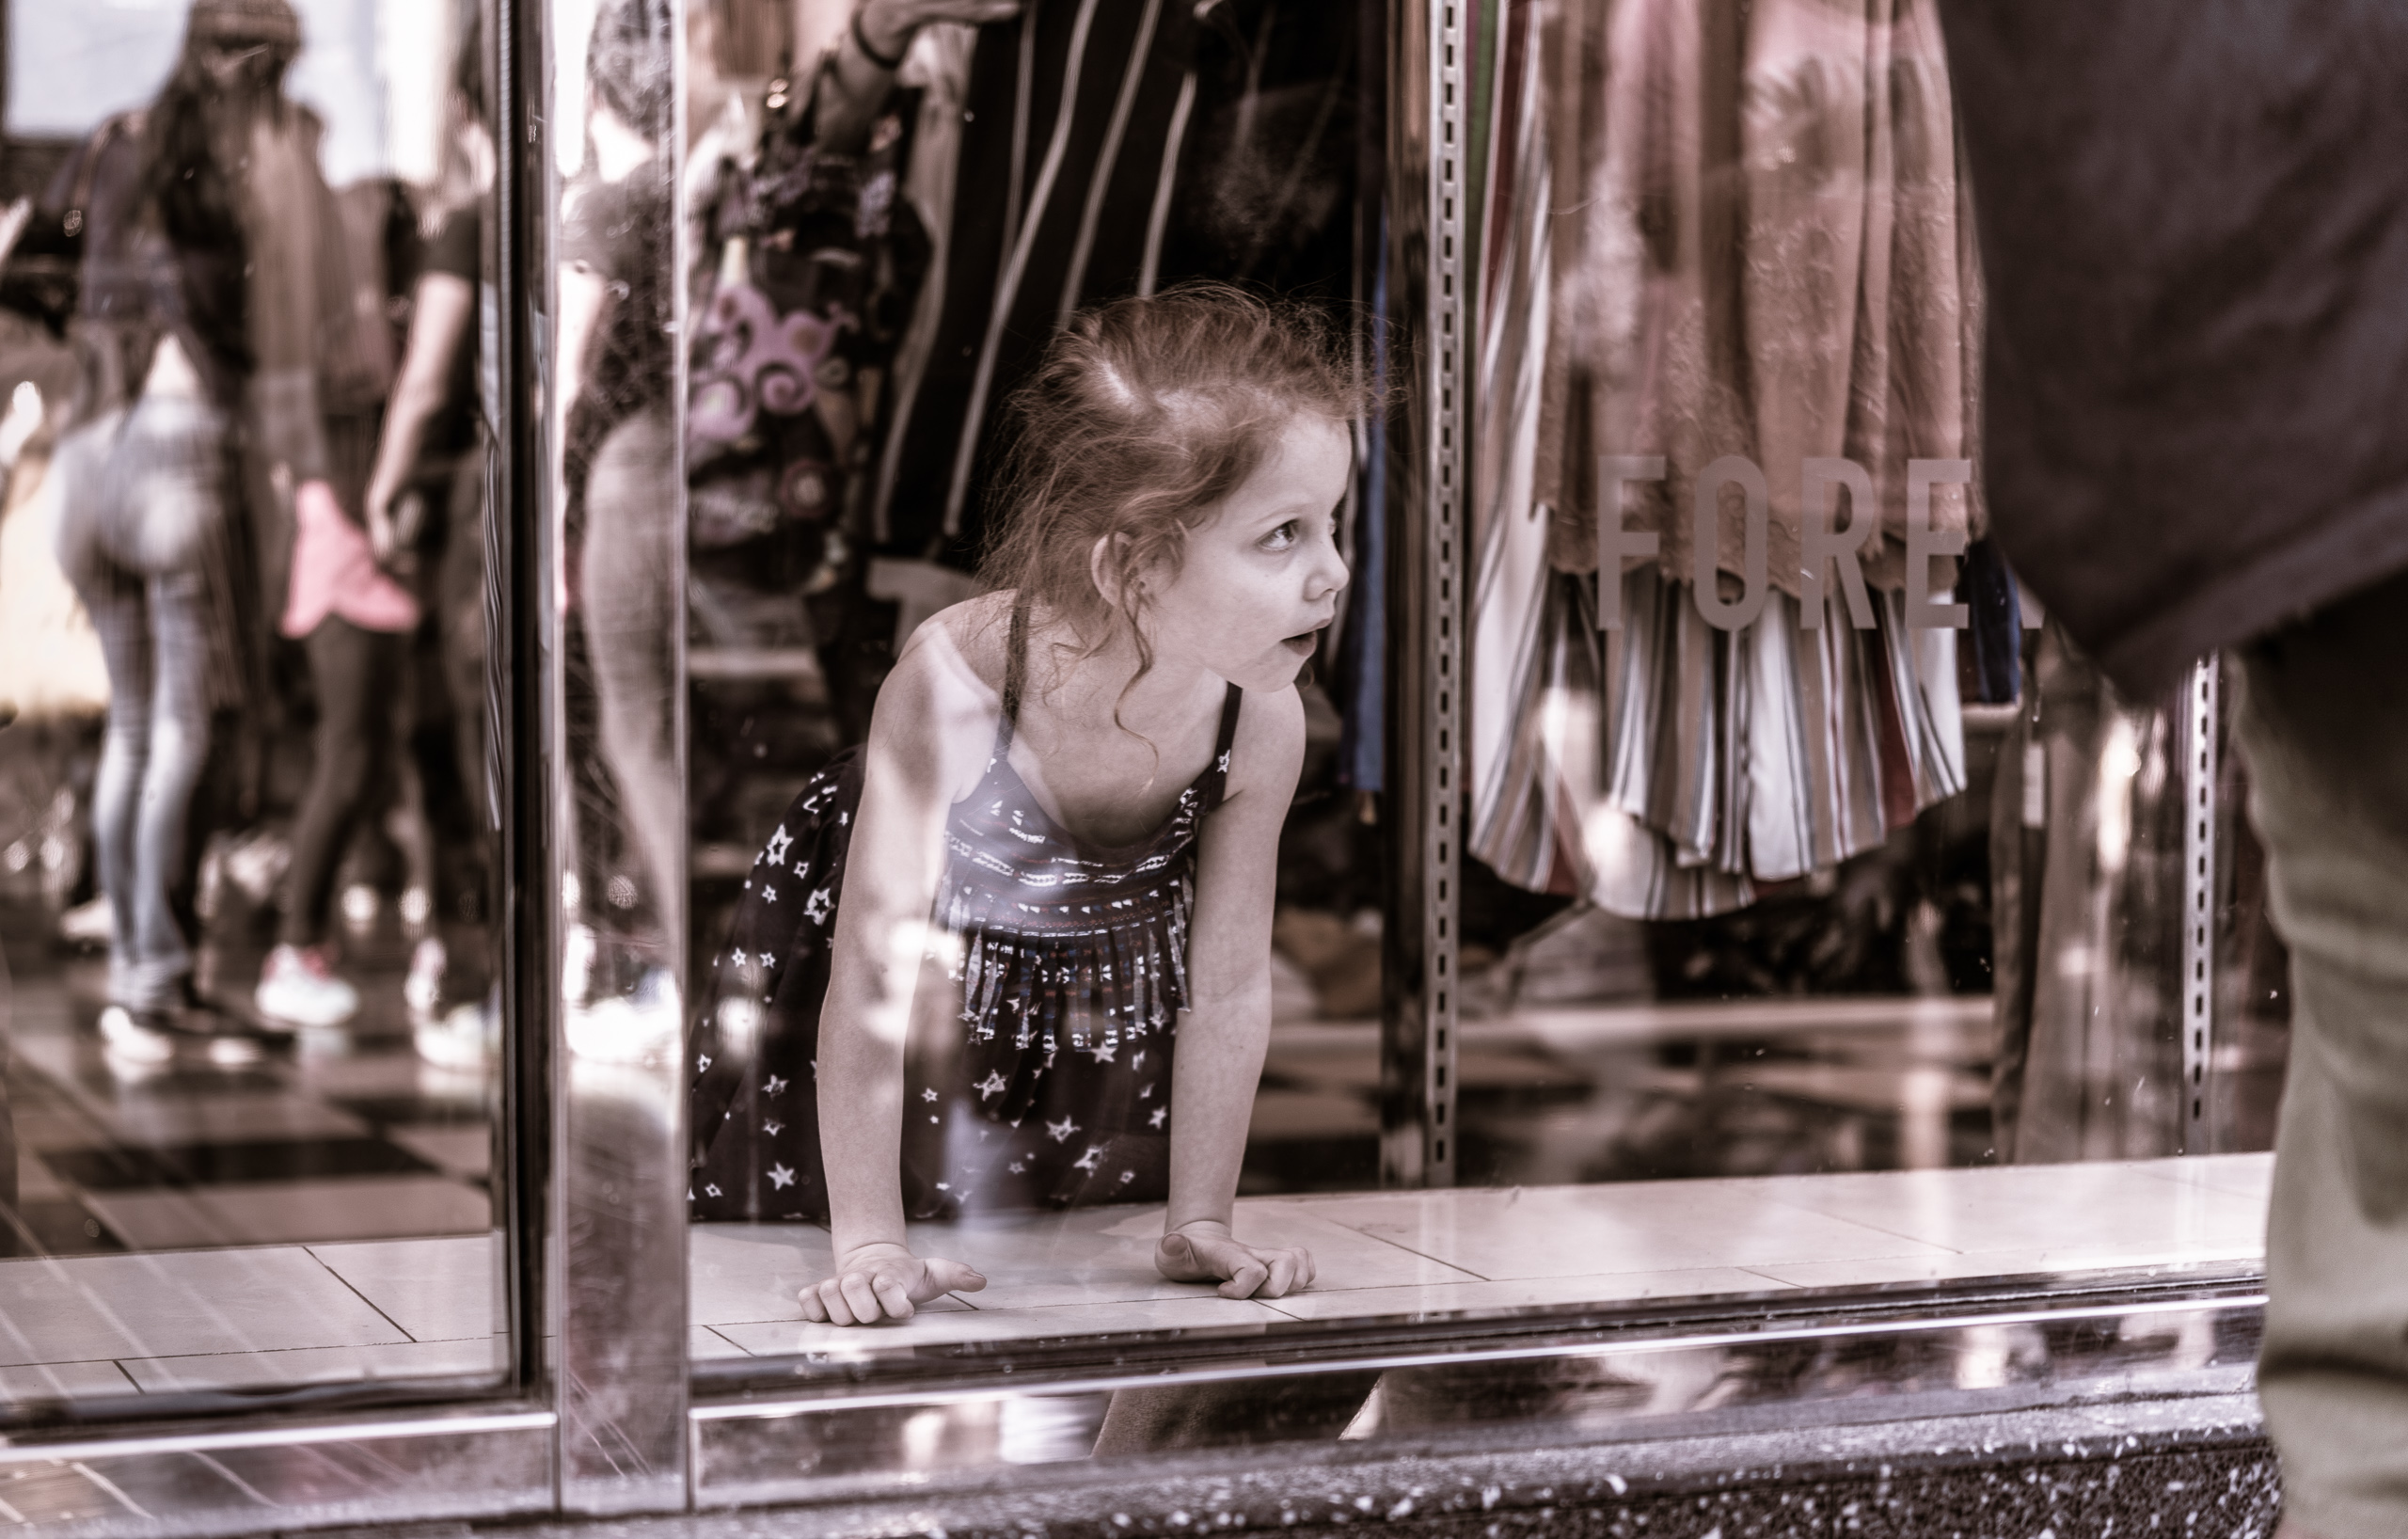 a young girl in the window display  inside Forever 21 at Hollywood & Highland looking out to the activity and people on the wide Hollywood Blvd sidewalk